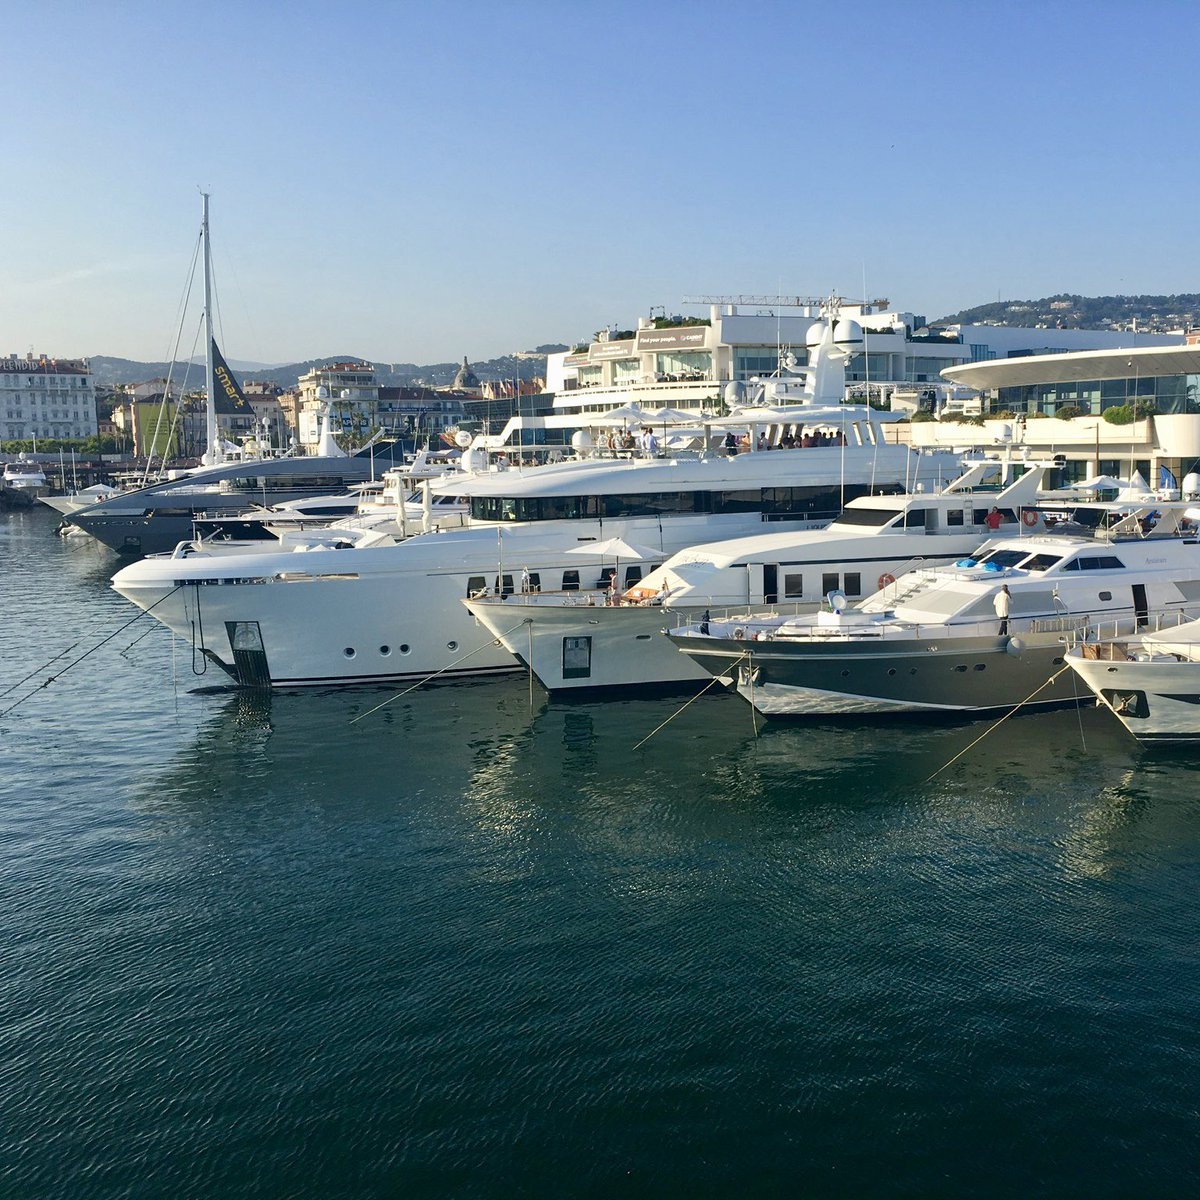 Almost ready for Cannes Lions 2019! Masses of organisation across our four yachts, but getting there! #cannes #canneslions #canneslions2019 #cannes2019 #bespokeyachtcharter